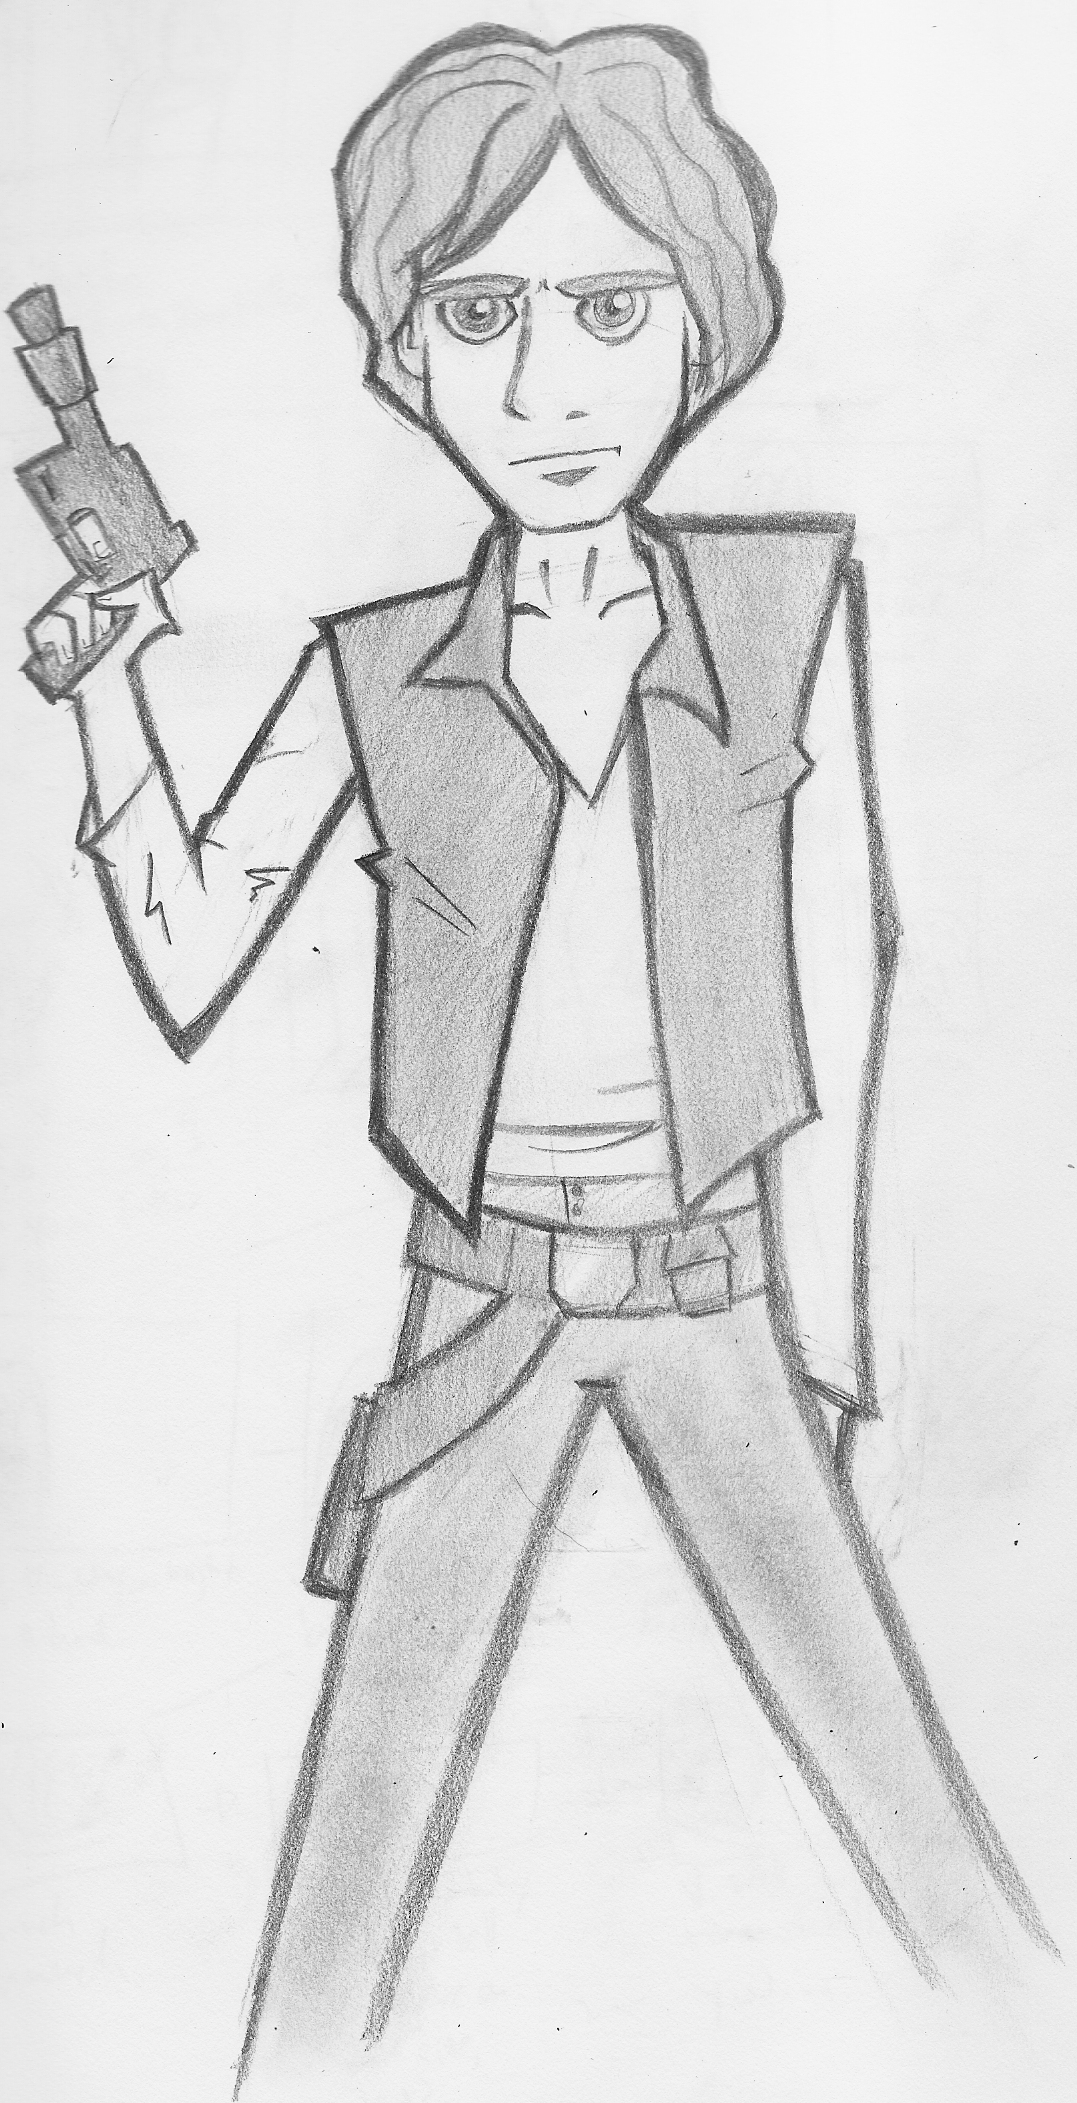 han solo sketch by raccooninasuit on deviantart